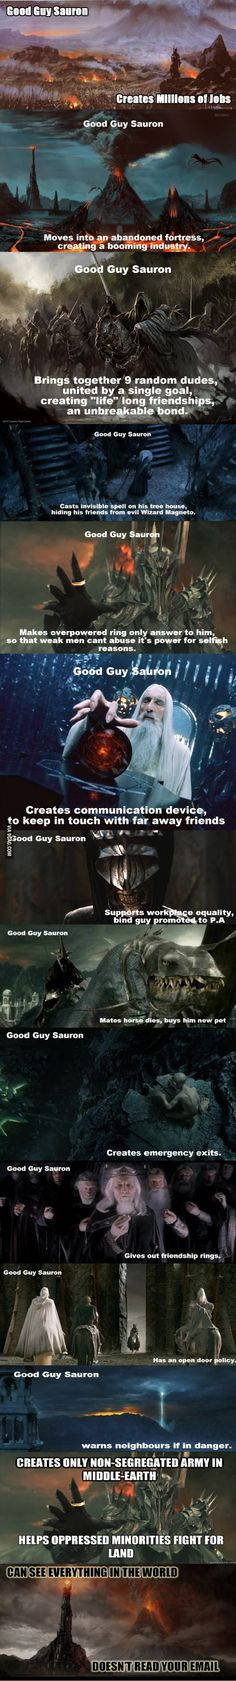 Good Guy Sauron. Long post no potato.